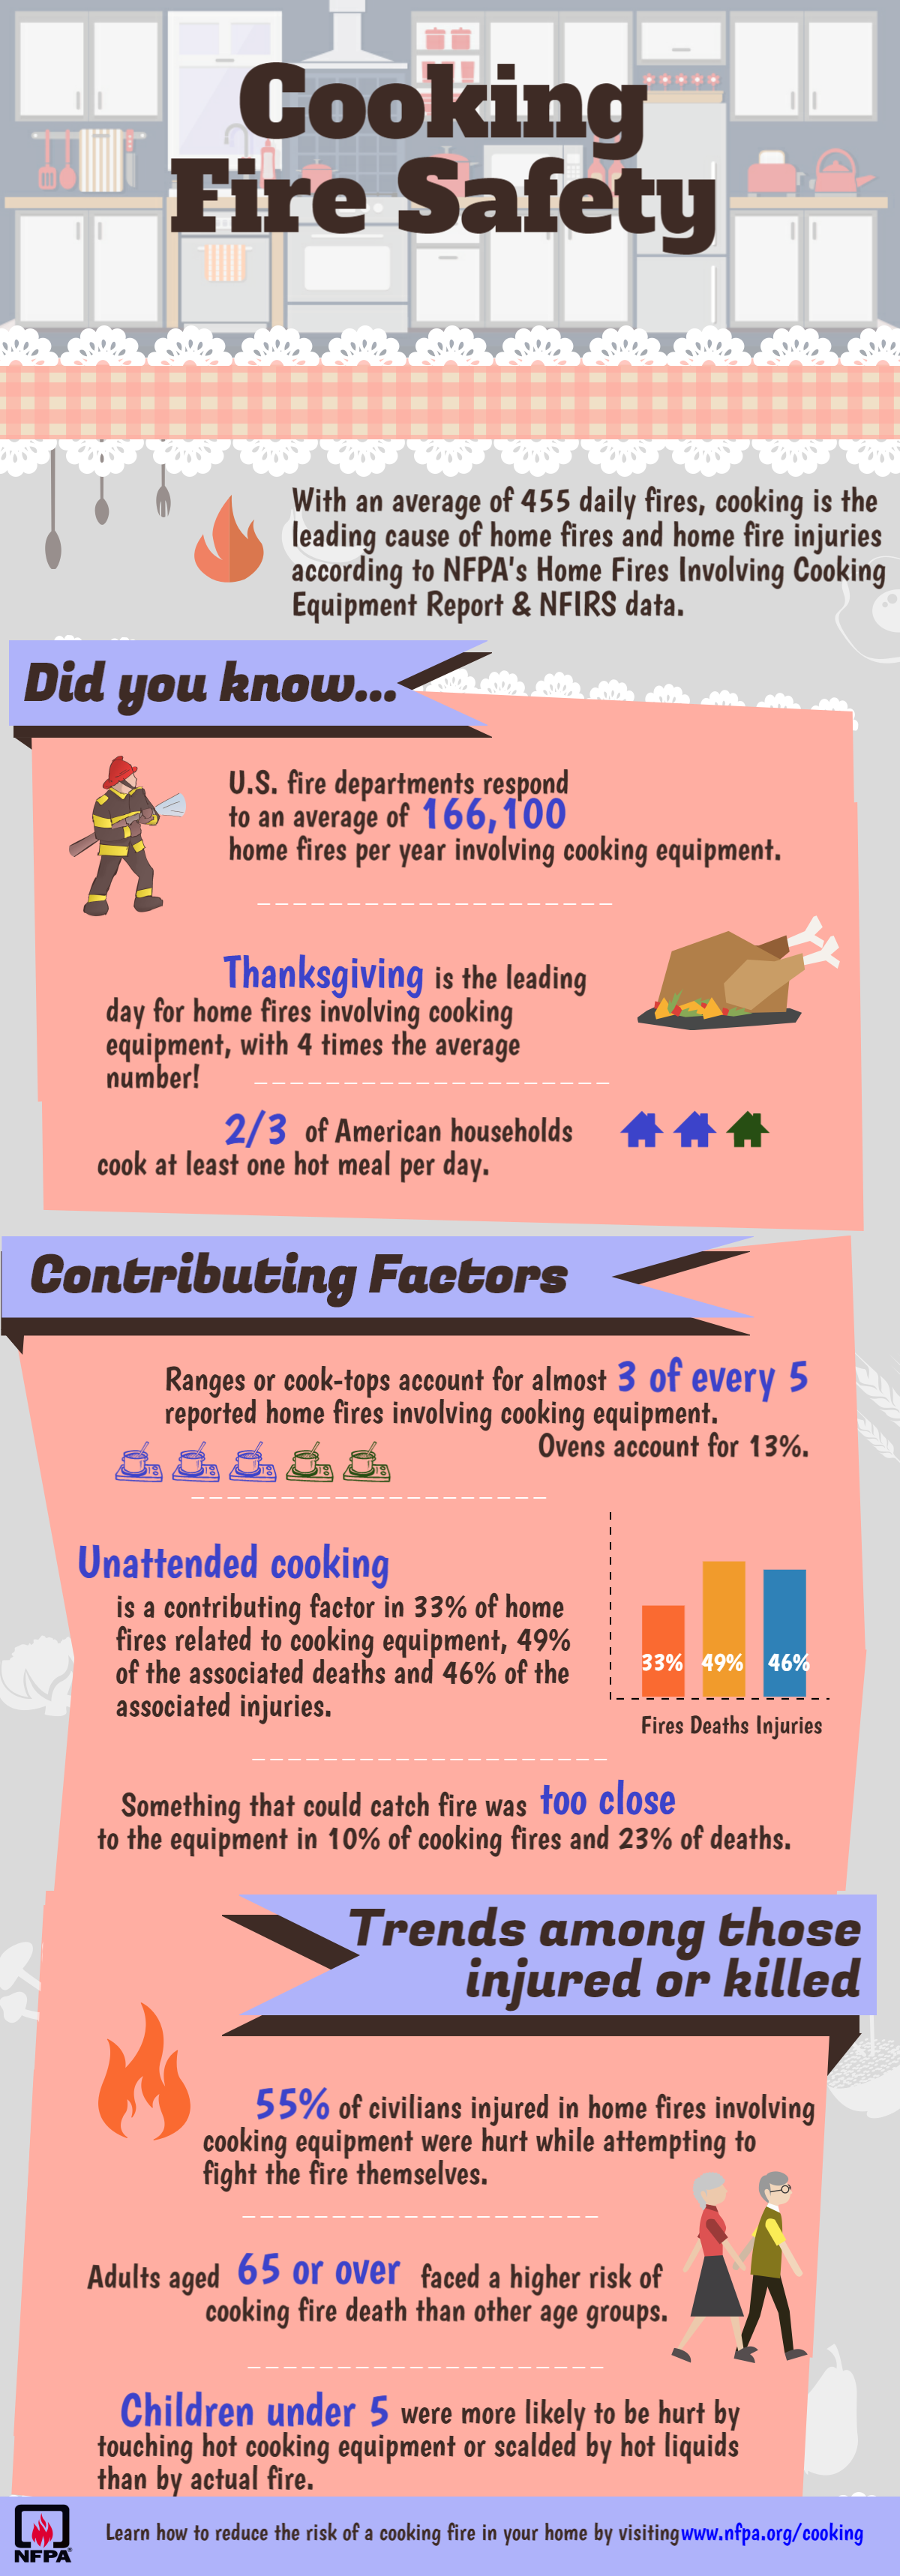 Worksheets Basic Cooking Terms Worksheet nfpa safety messages about cooking infographic